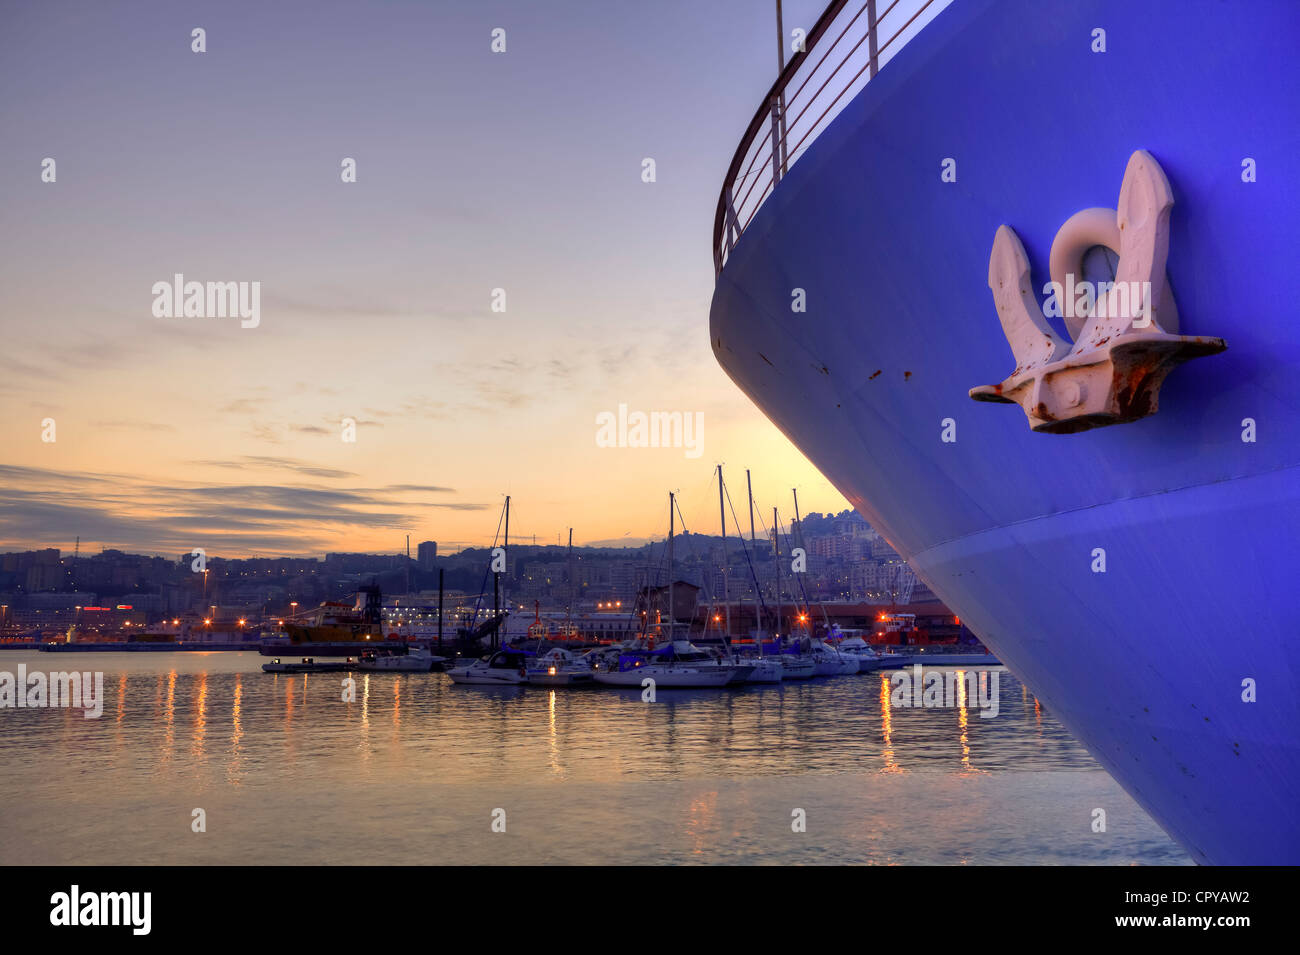 Genoa in the evening - Stock Image